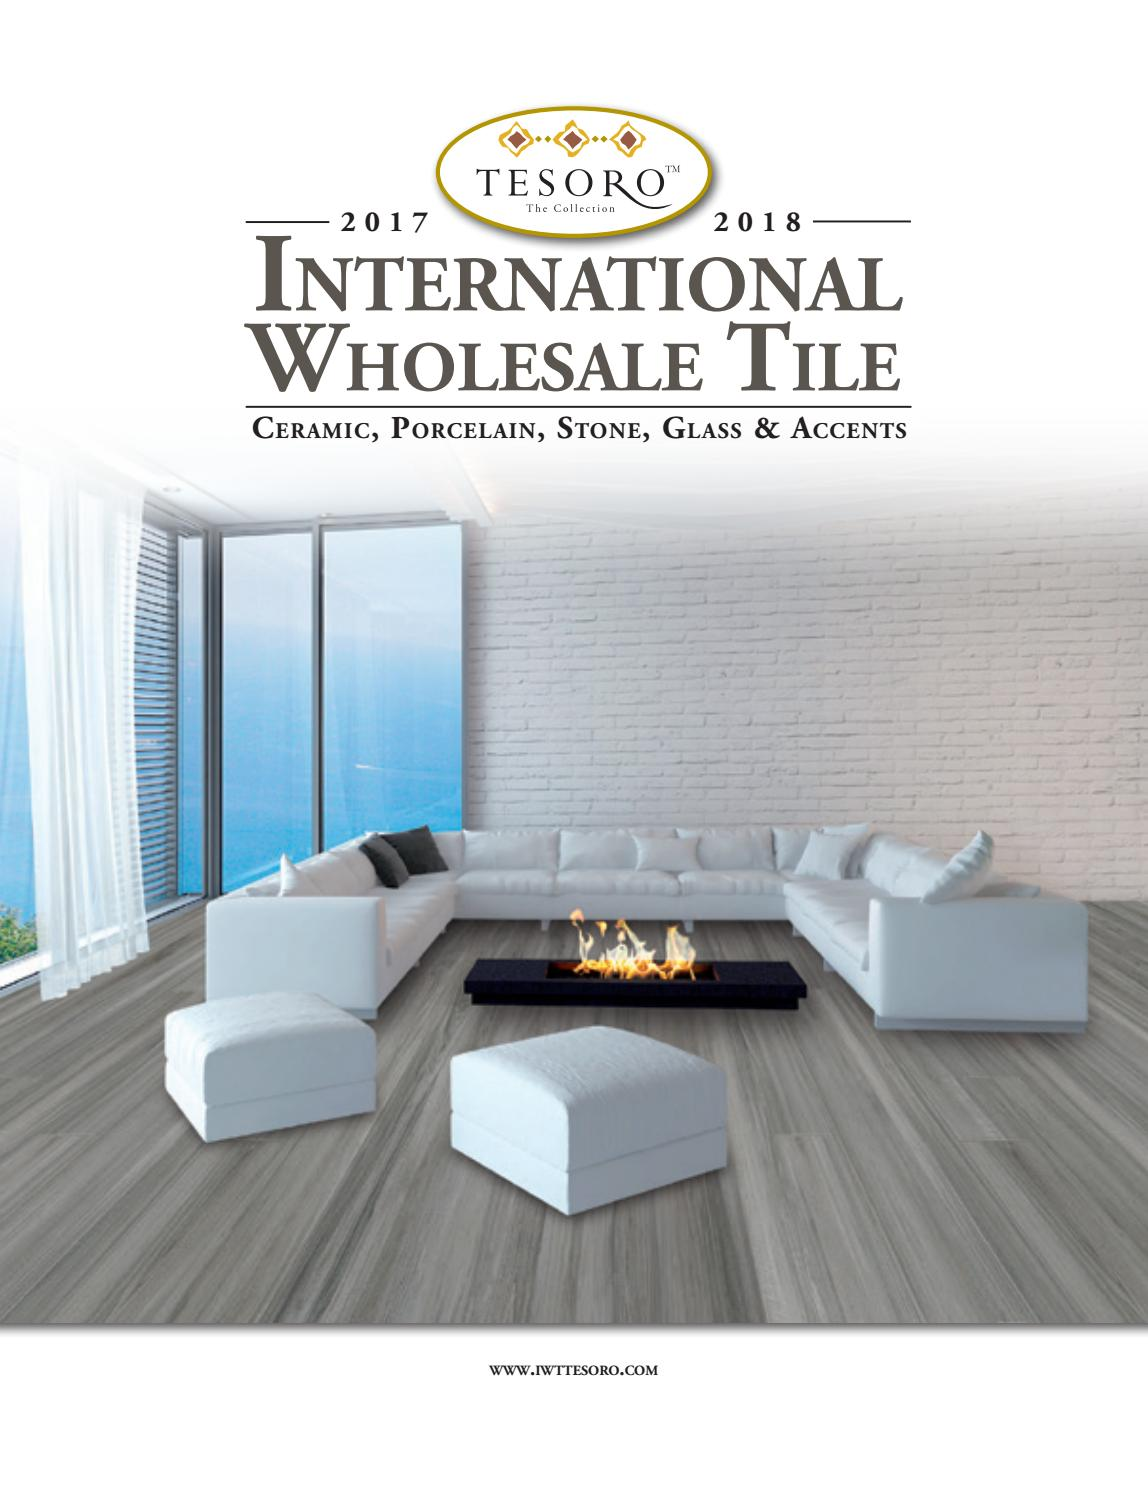 2017 2018 international wholesale tile tesoro catalog by international wholesale tile issuu